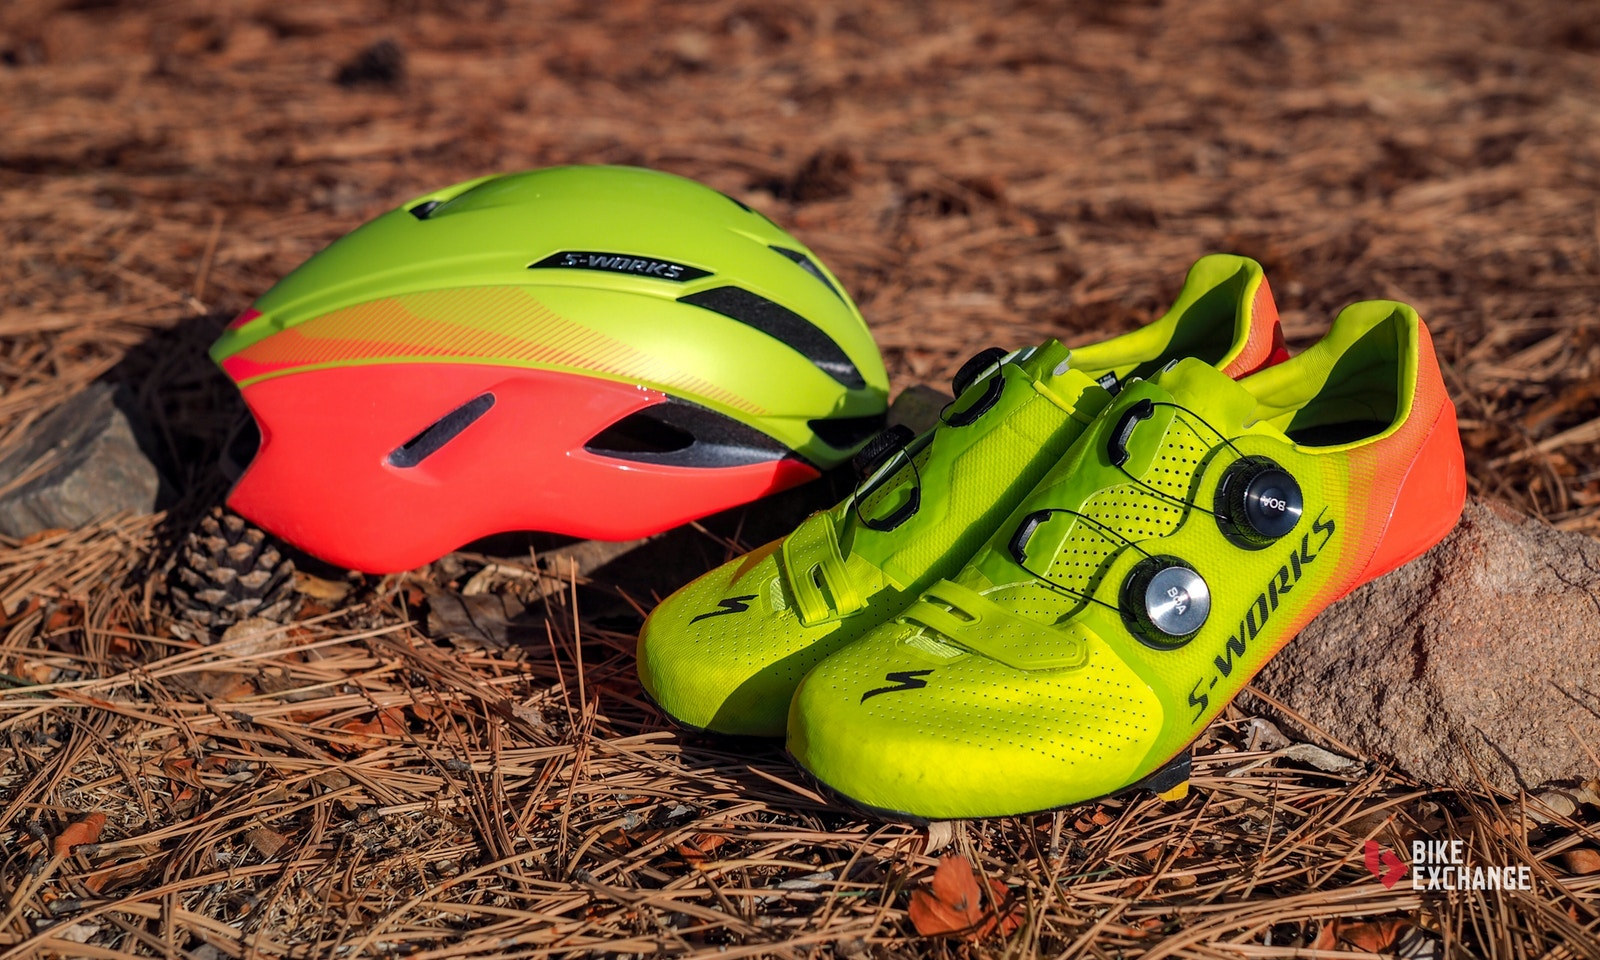 2018 Specialized S-Works 7 shoes and Evade II helmet – Ten Things to Know